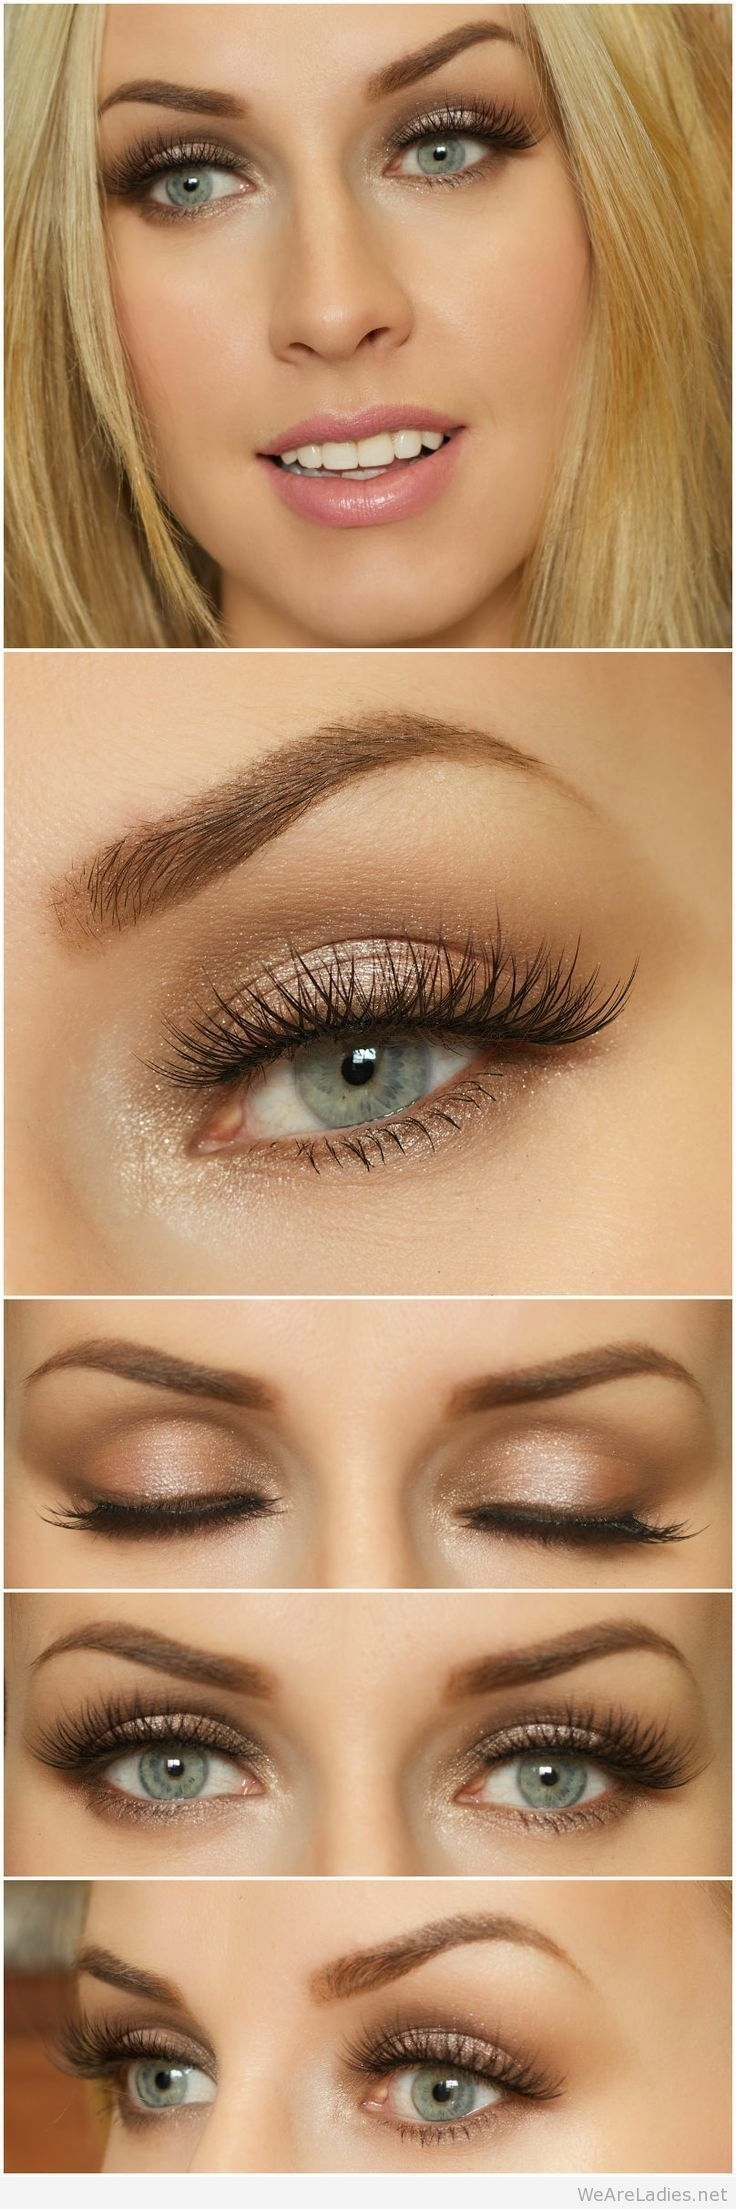 Makeup Colors For Brown Hair Green Eyes